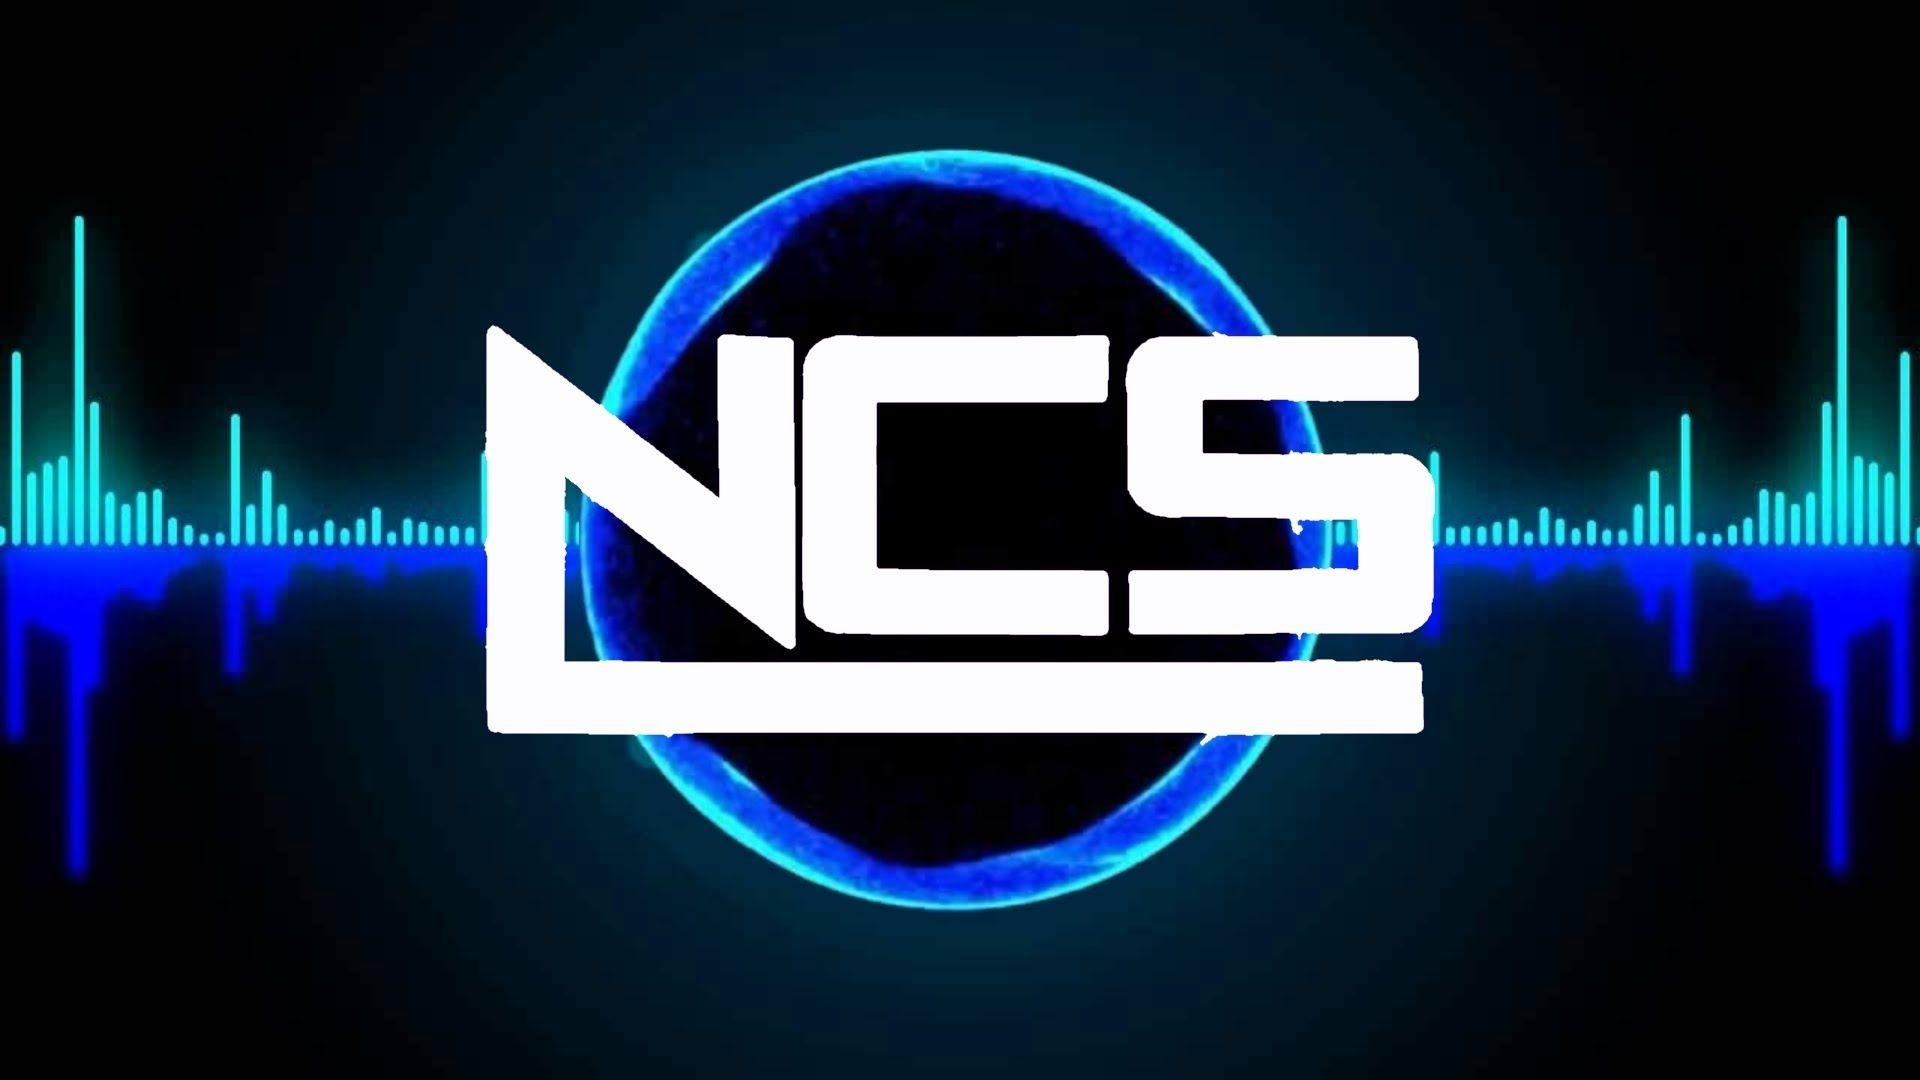 Free cool background music for games Download - Best Ncs